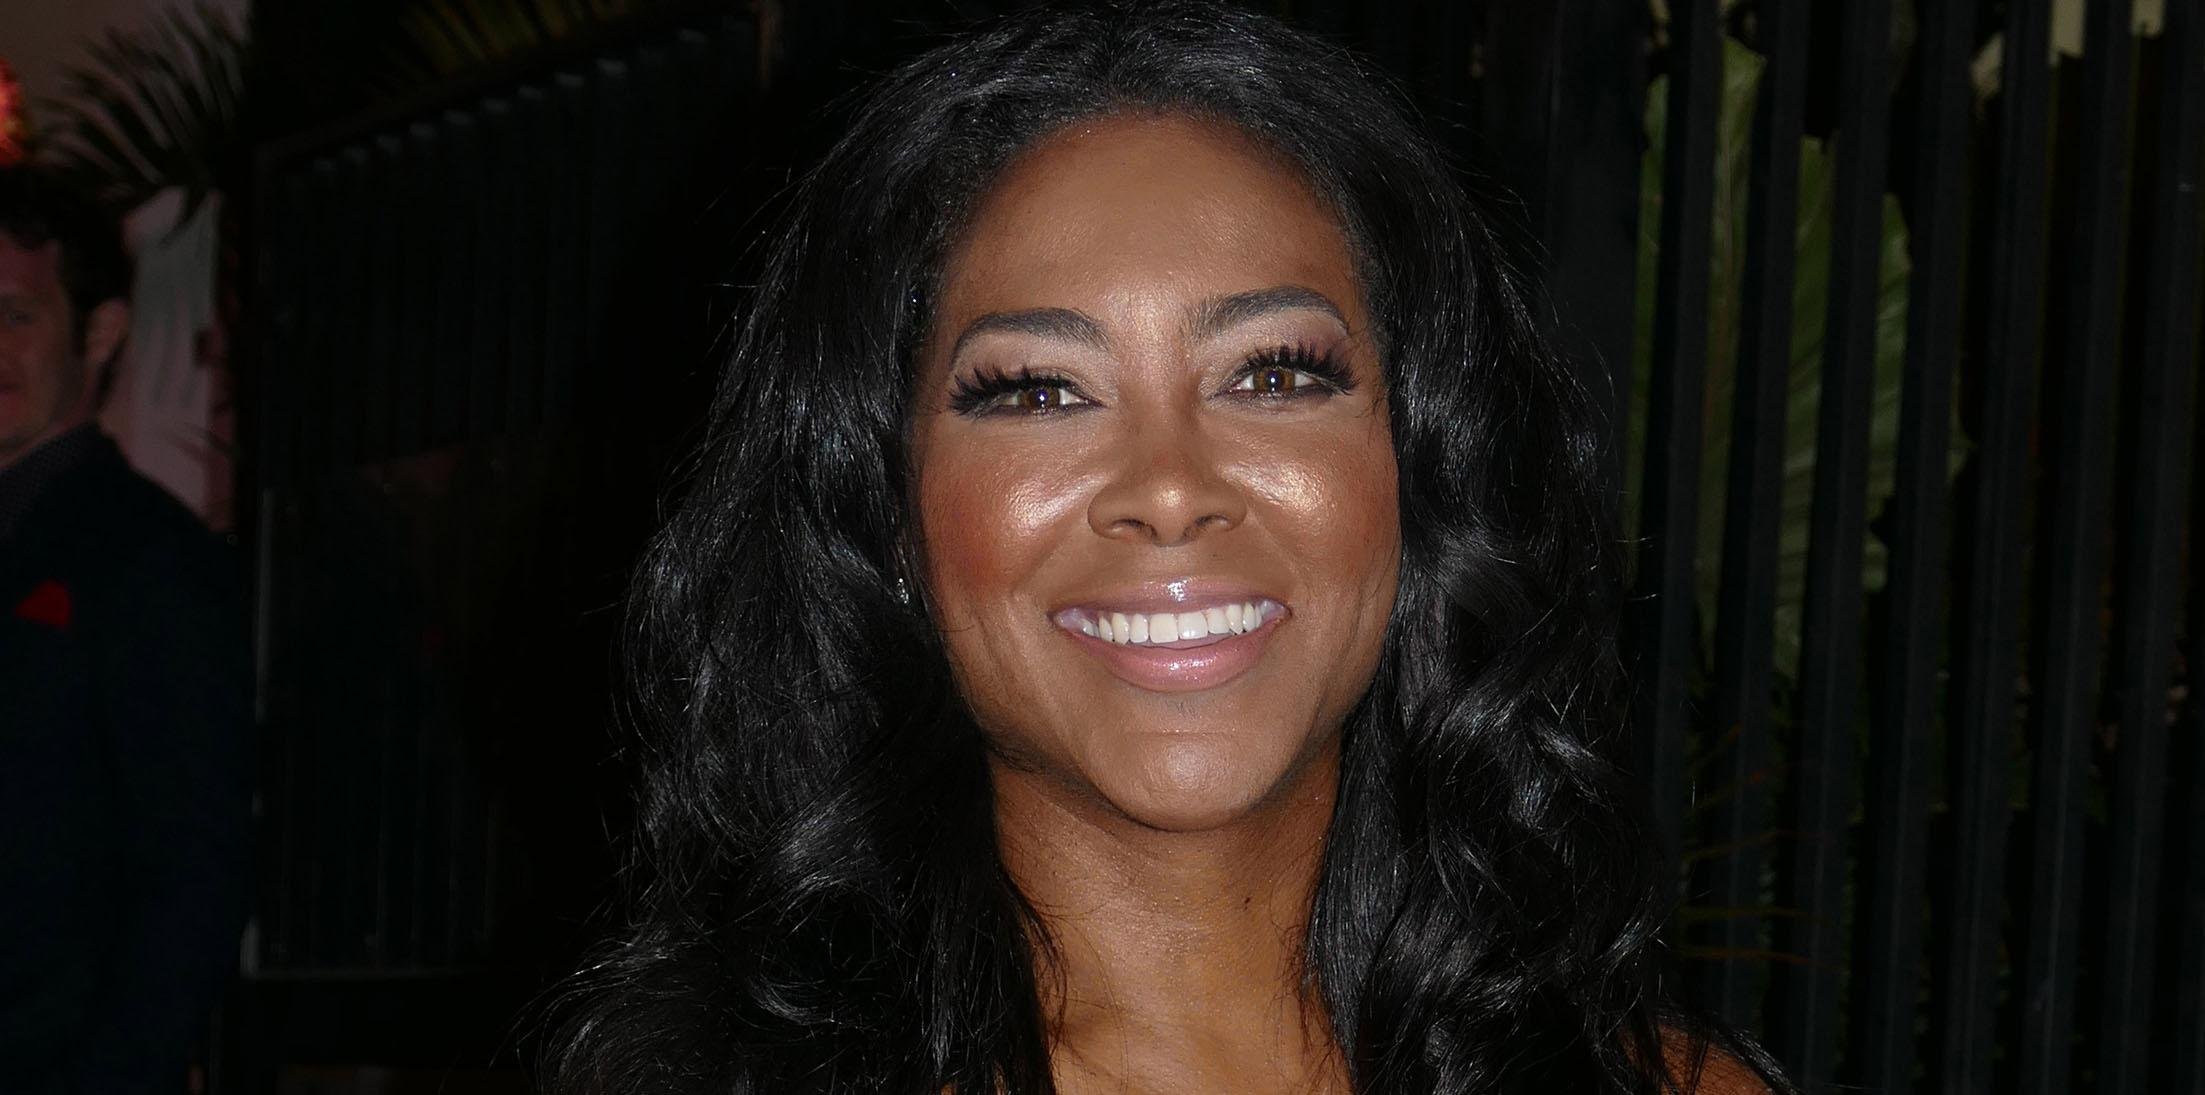 *EXCLUSIVE* Kenya Moore poses for pictures as she leaves a party in Miami